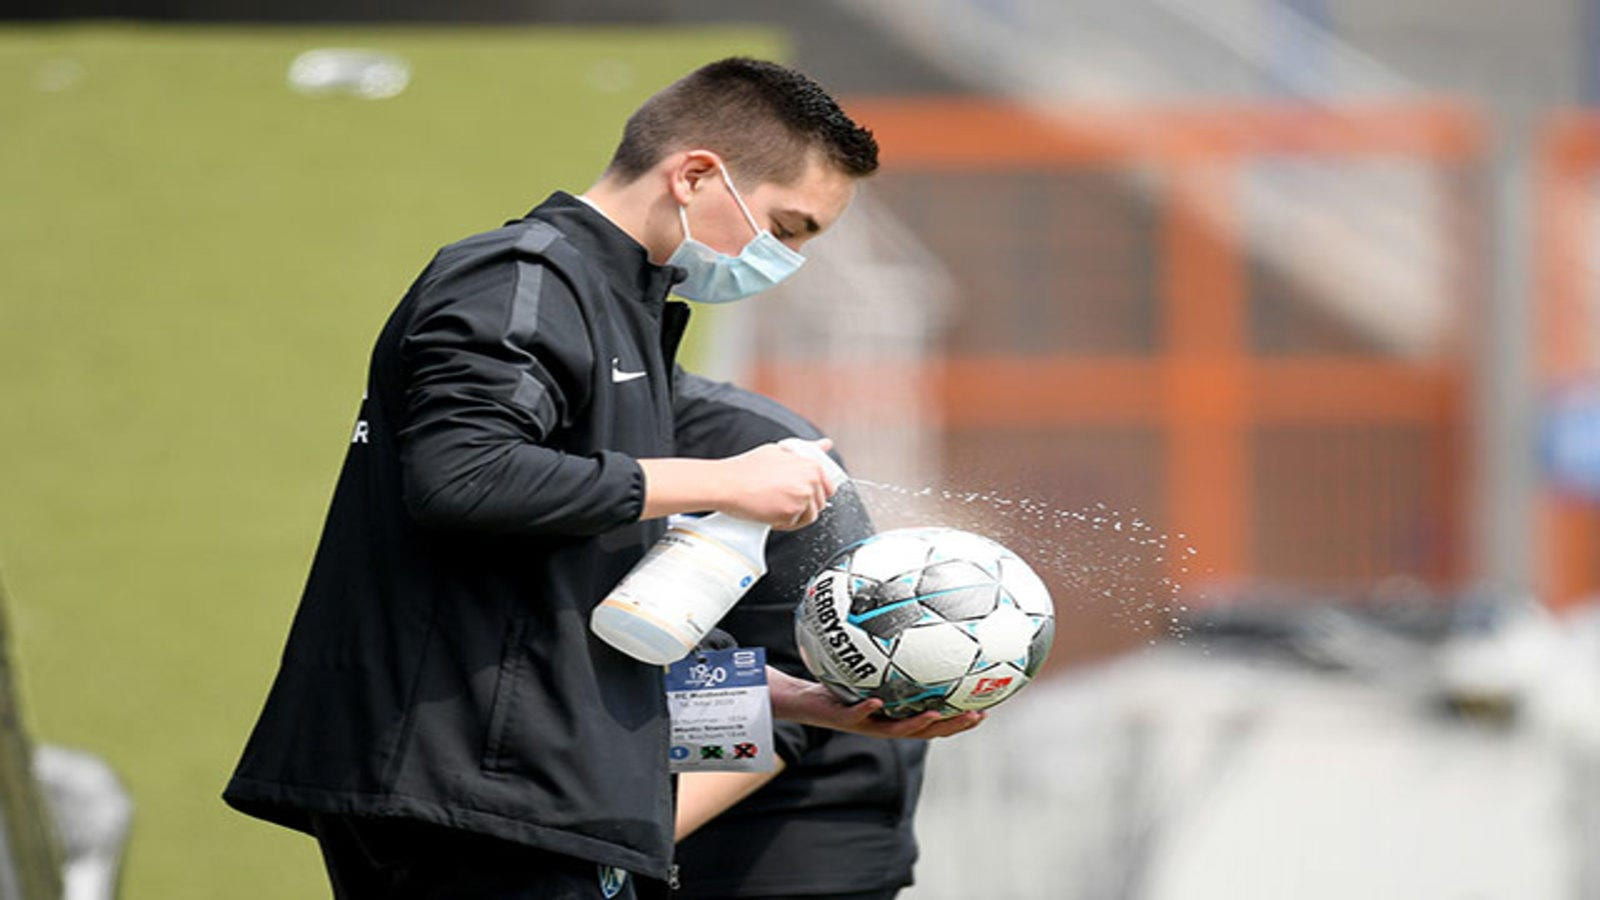 Impact of the Covid-19 pandemic - european soccer leagues